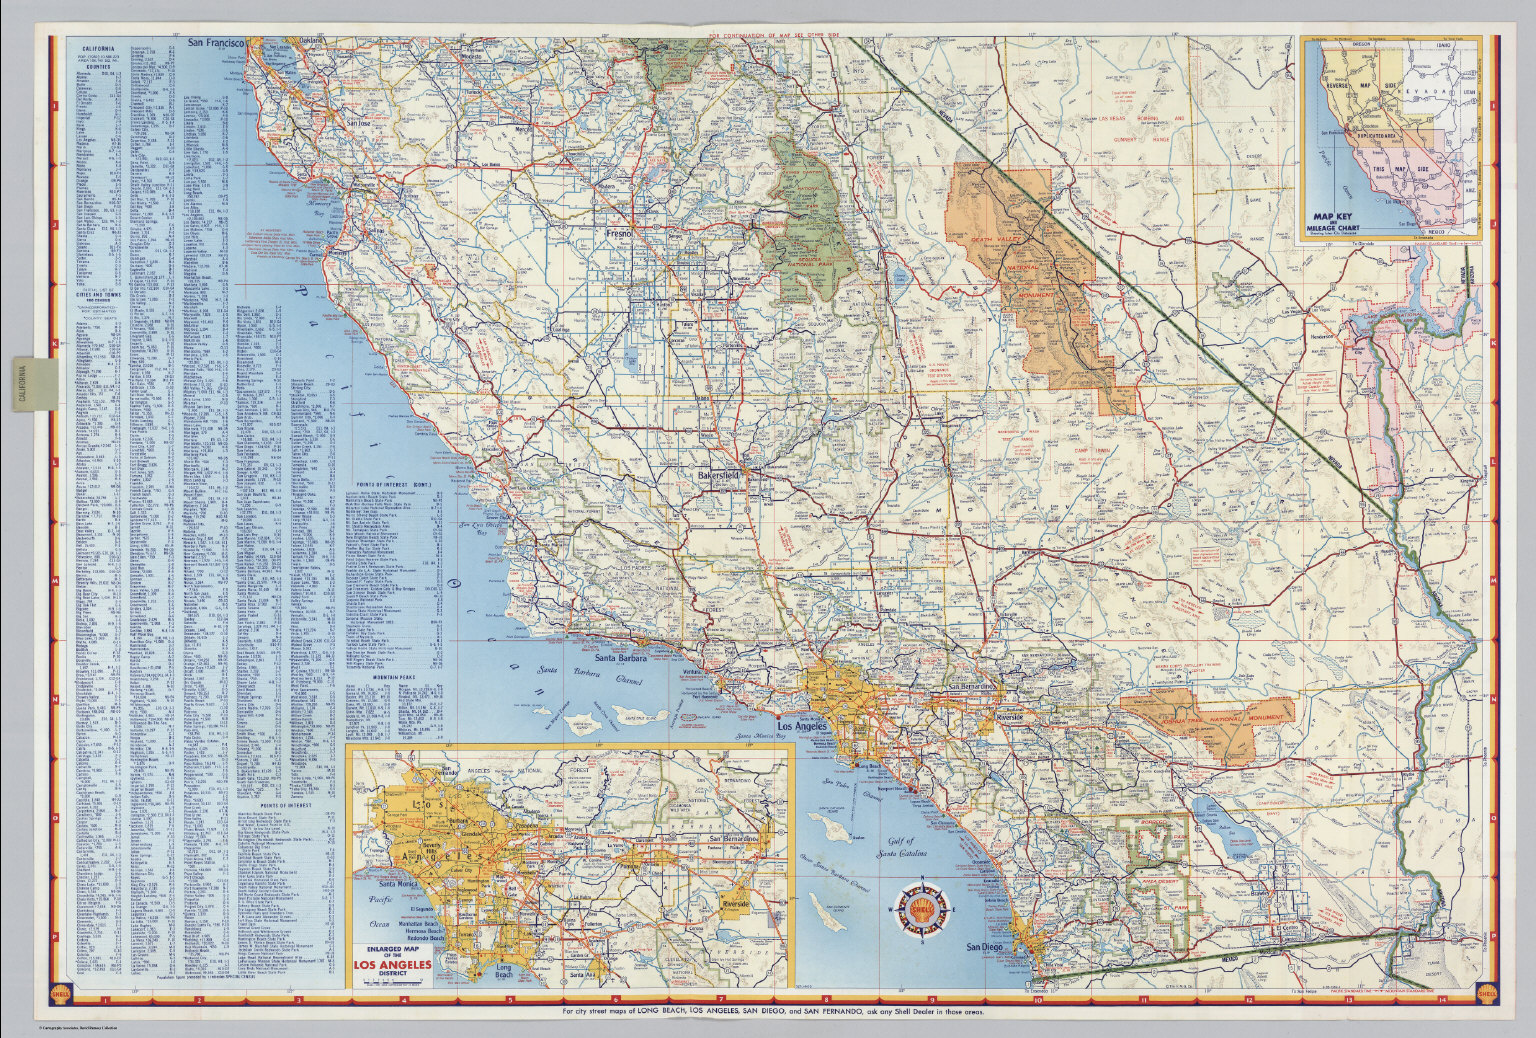 Shell Highway Map of California southern portion David Rumsey